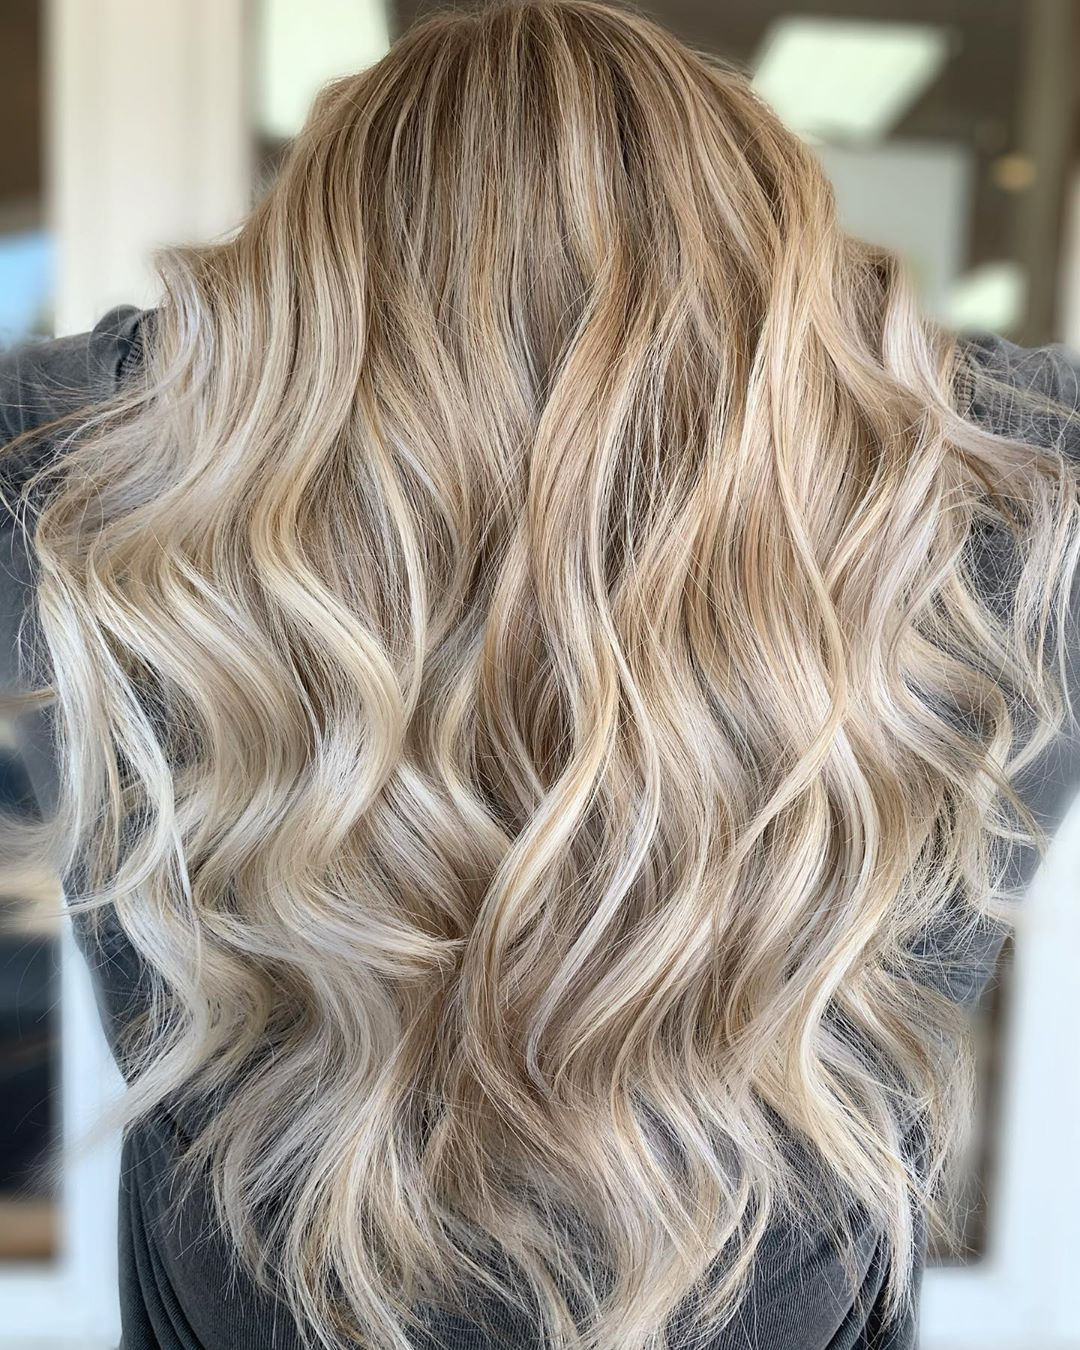 Full Blonde Balayage with Lowlights